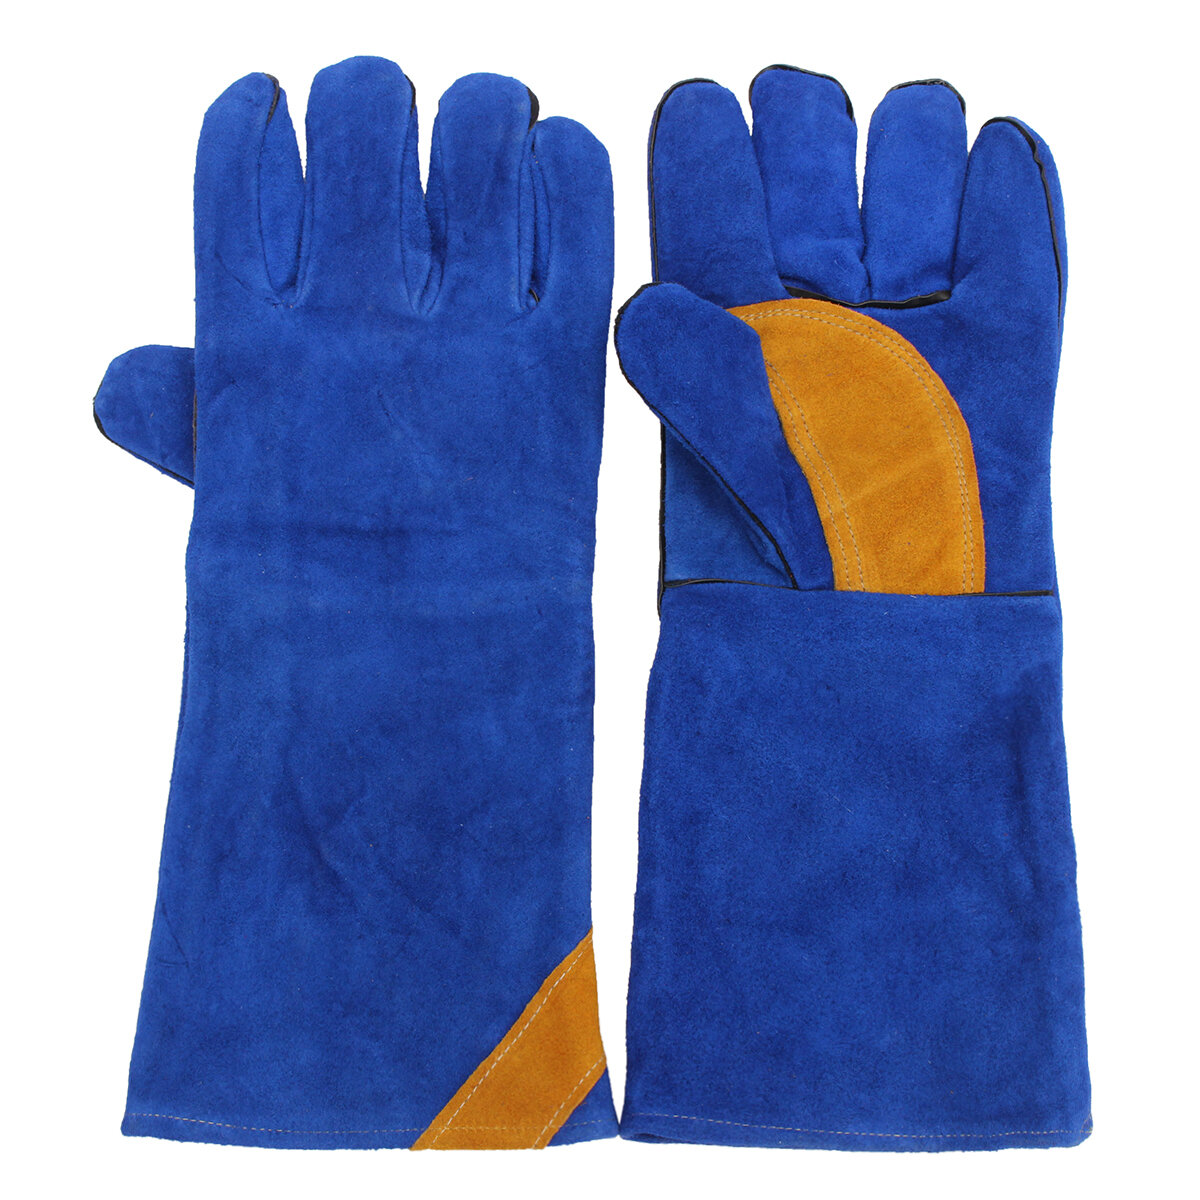 16inch Paire Long Heavy Duty Double renforcée Palm Gants Soudure Gants Soudeur